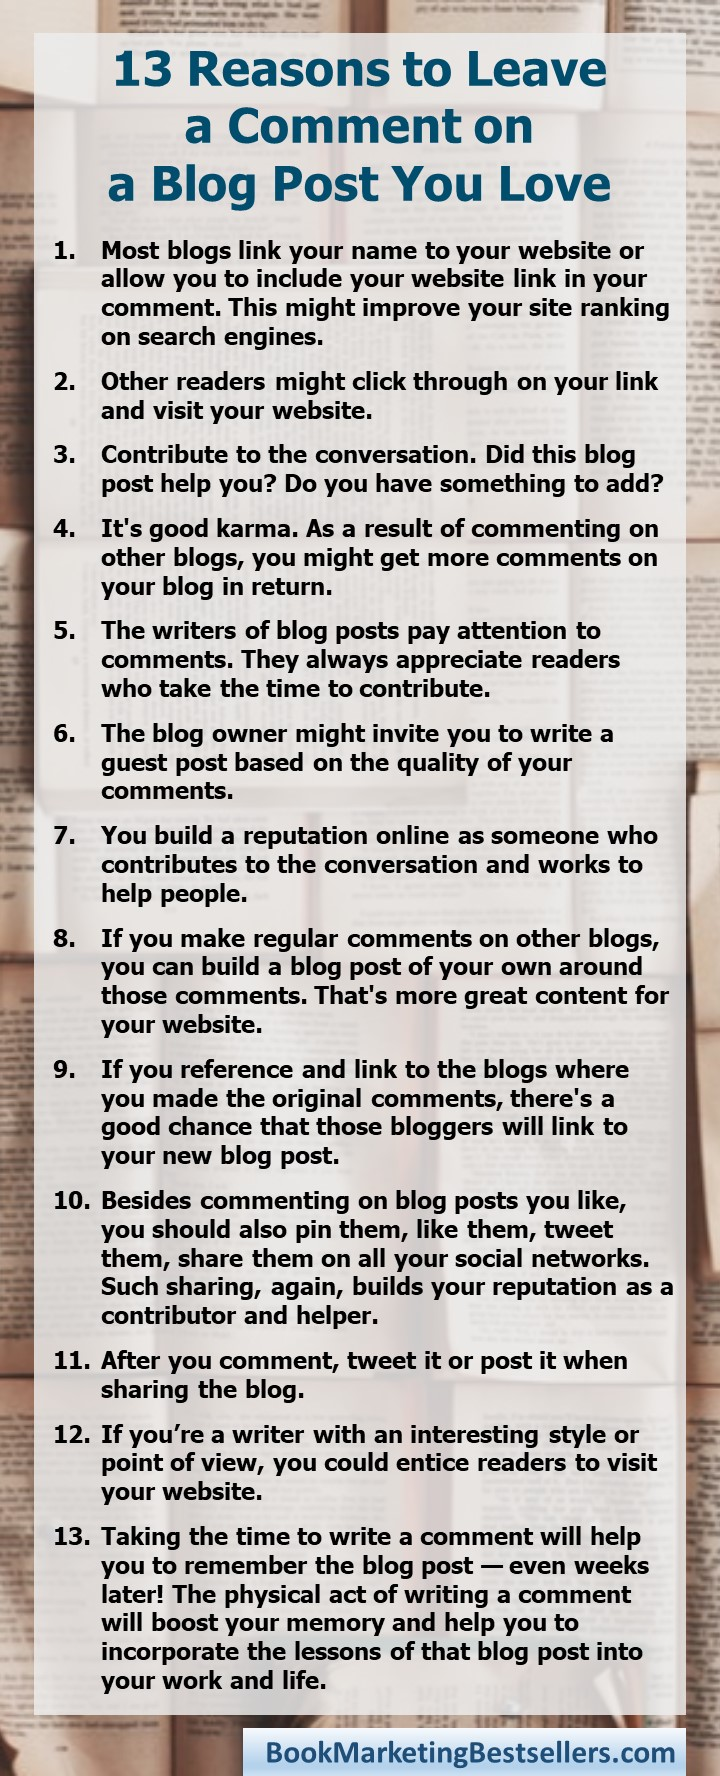 13 Reasons to Leave a Comment on a Blog Post You Love: Get More Traffic, Get More Google Love